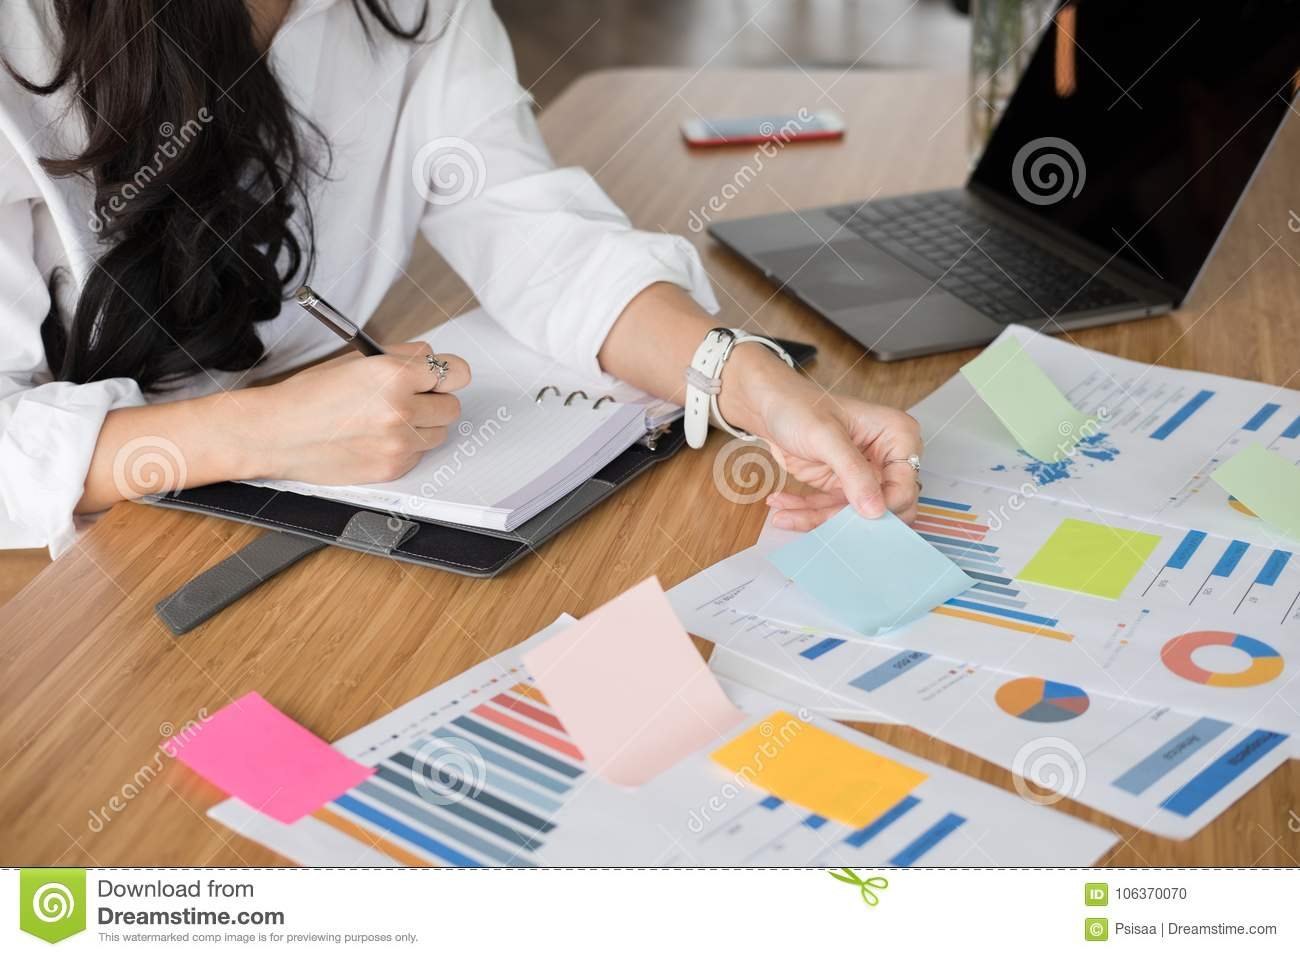 Businesswoman write note on notebook at workplace. startup woman